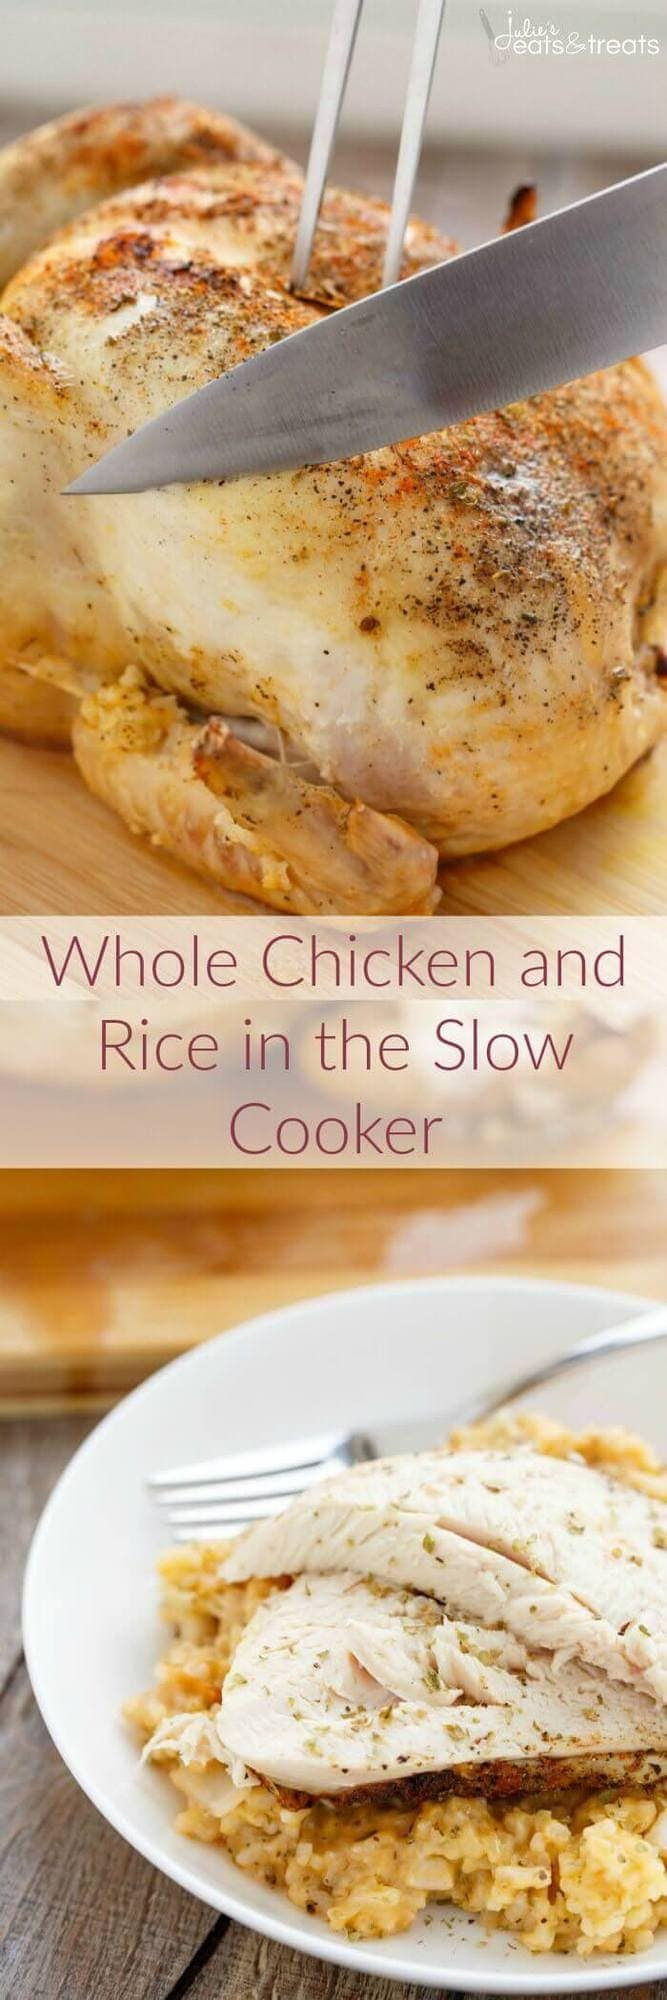 You Don't Have To But This Gives The Chicken A Nice, Crispy Skin (something  That Does Not Happen In The Slow Cooker On Its Own)